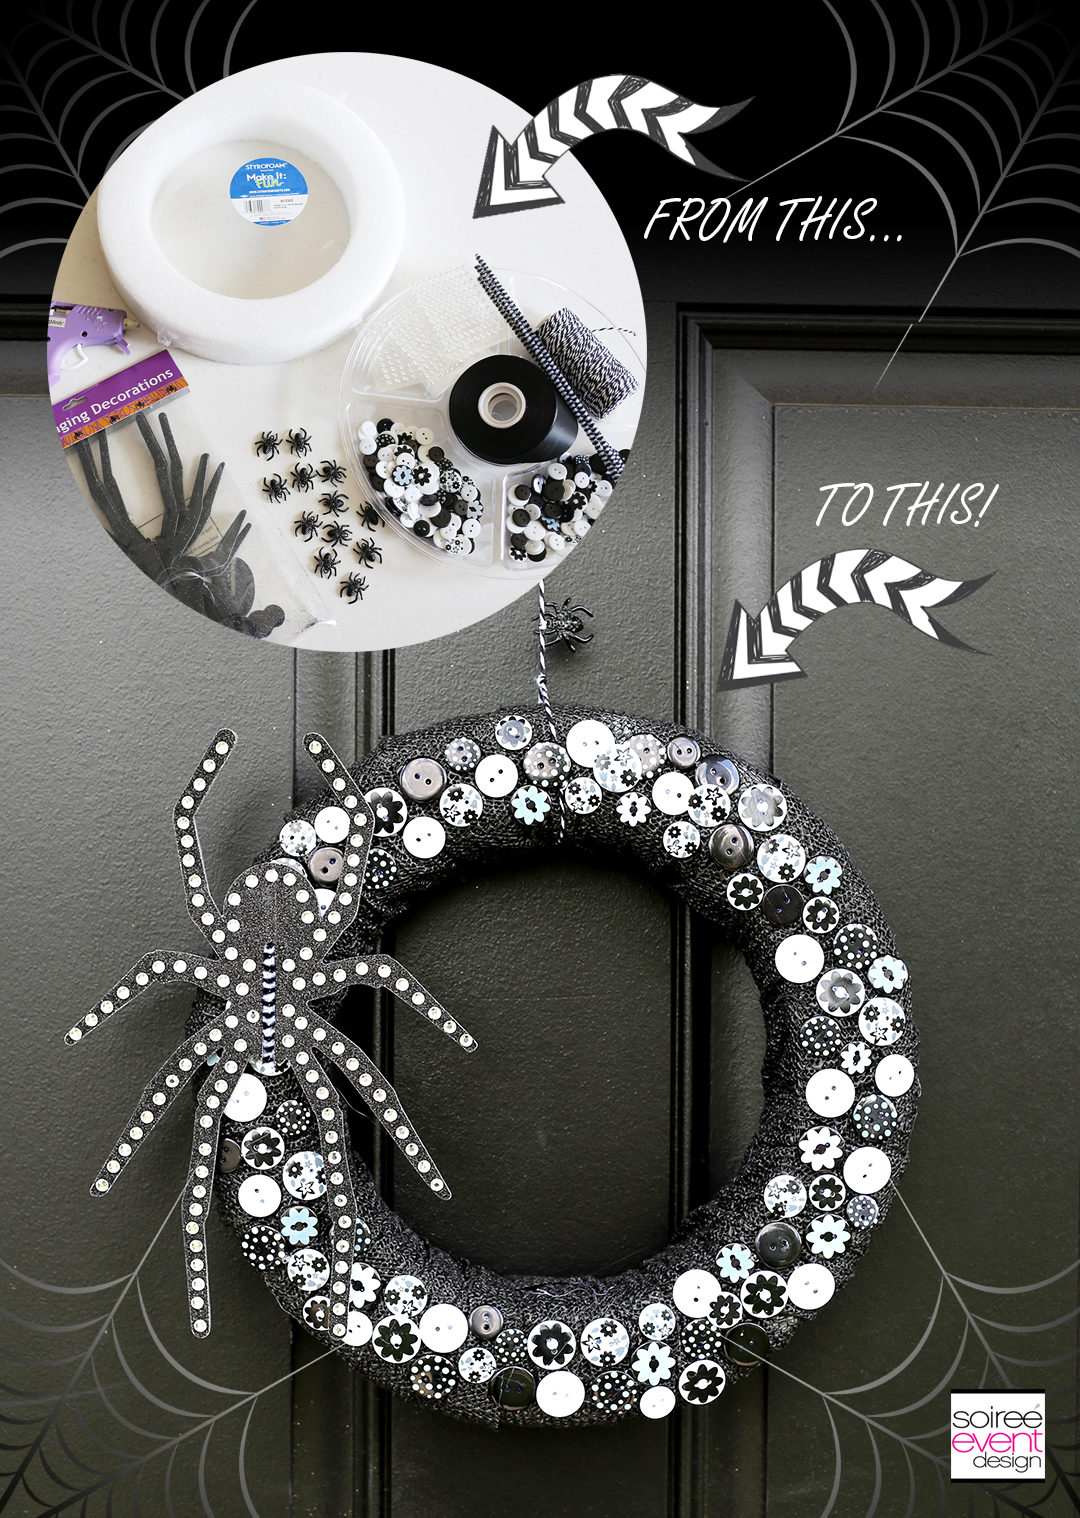 diy-halloween-wreath-tutorial-bling-spider